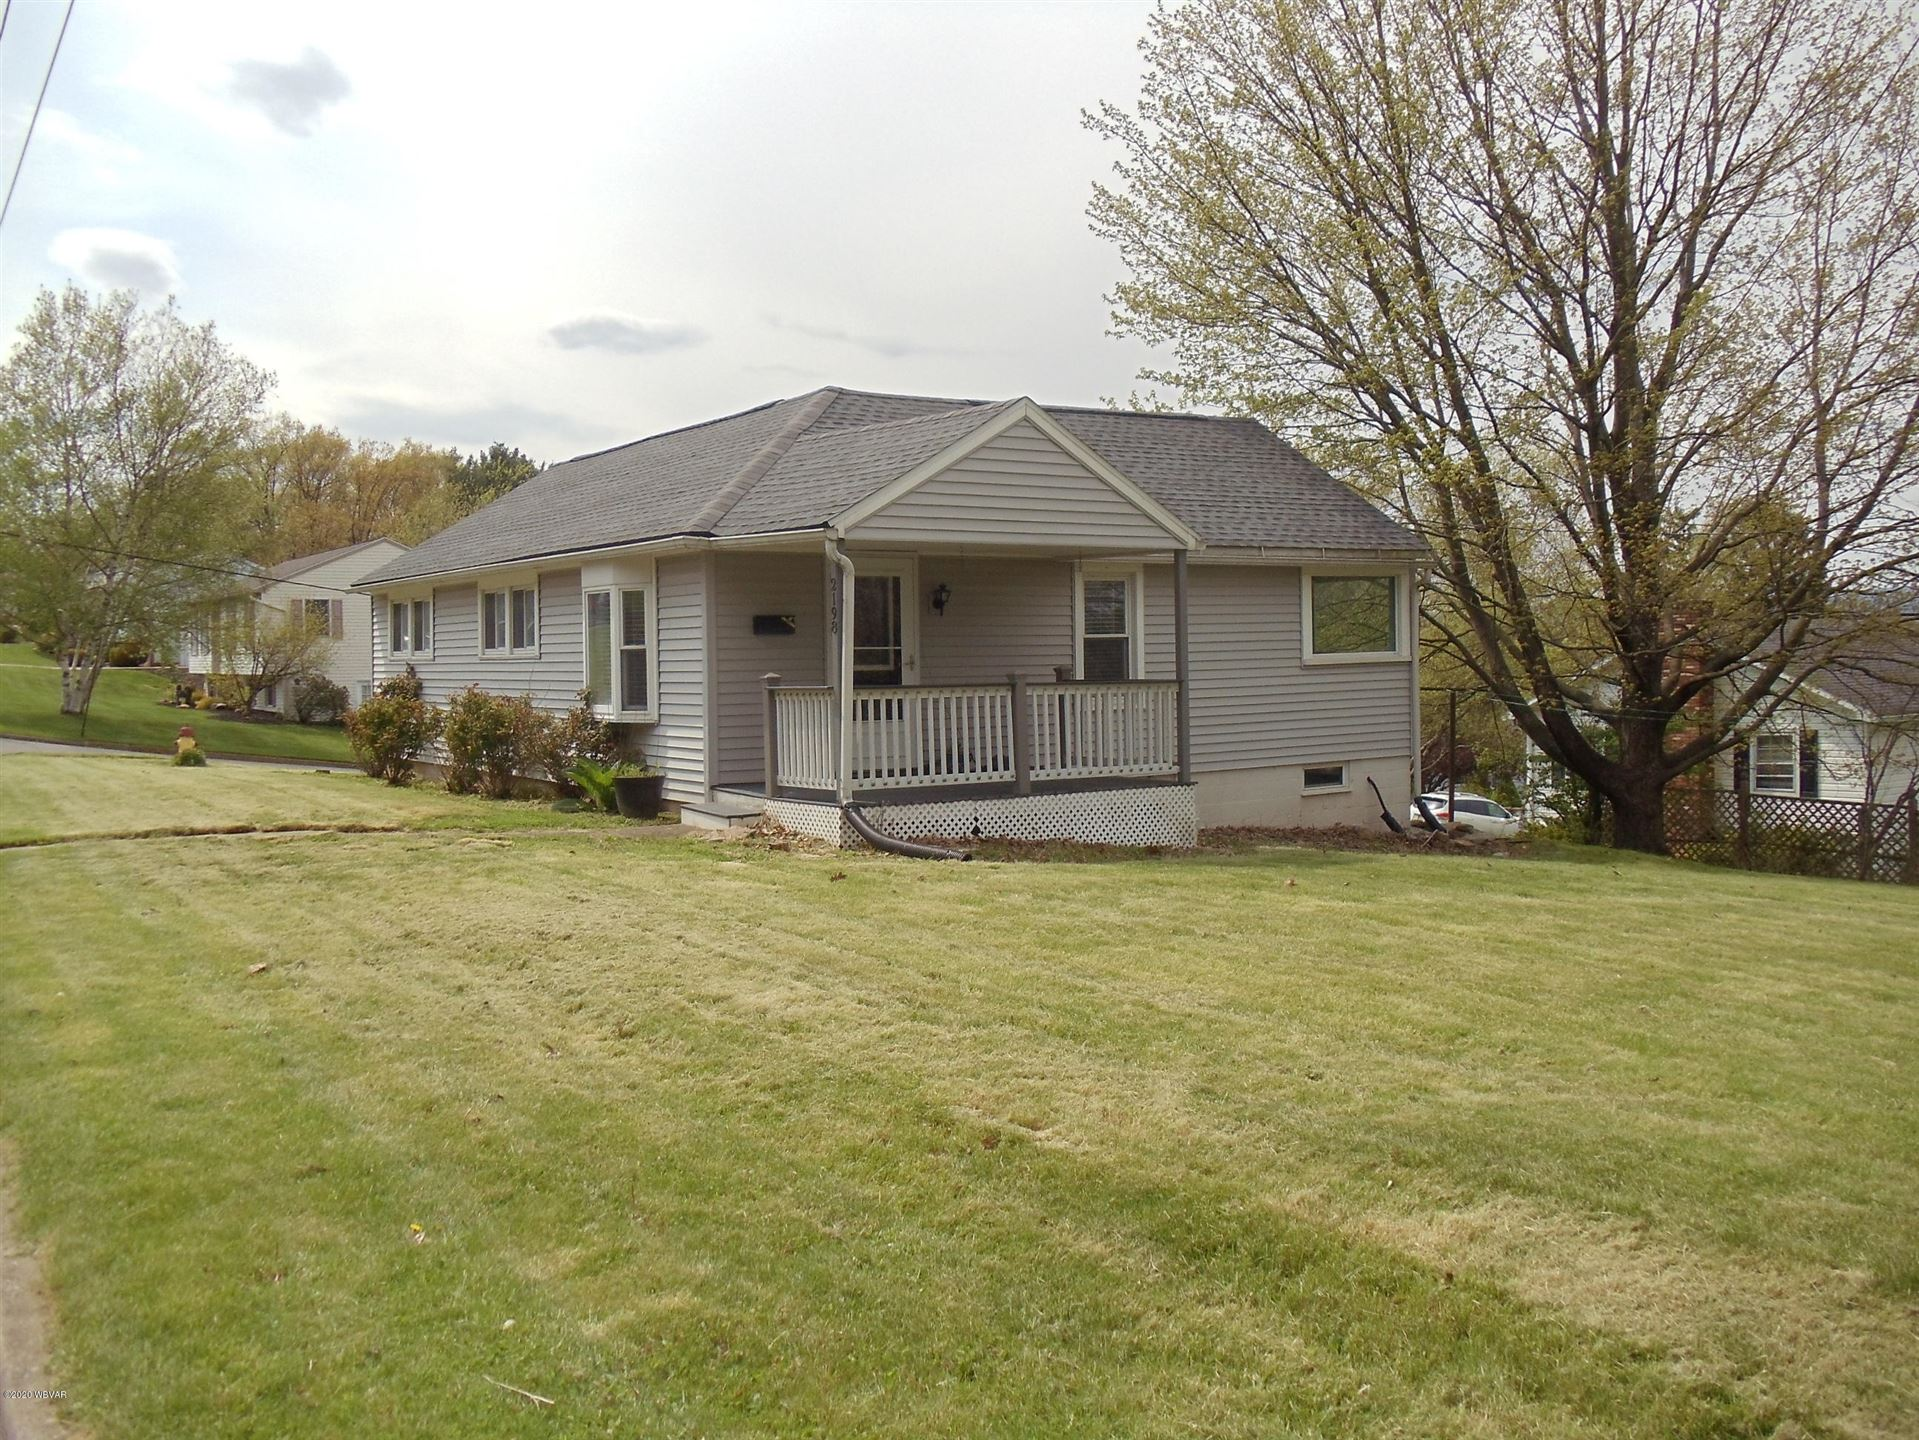 2198 W SOUTHERN AVENUE, South Williamsport, PA 17702 - #: WB-90061